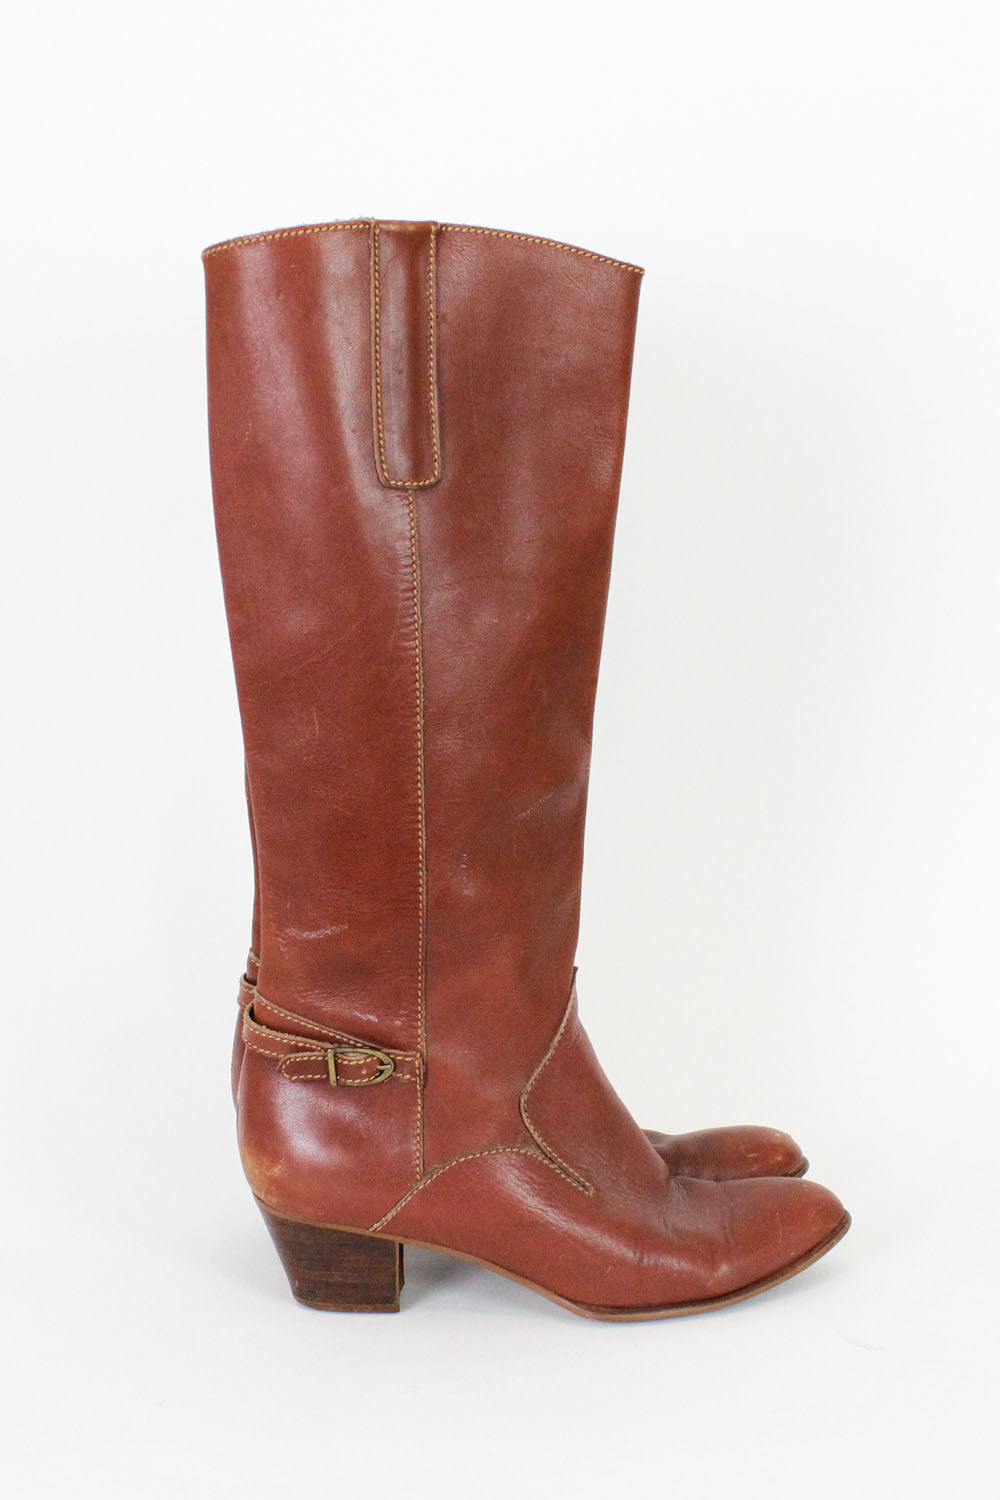 Redwood Leather Boots 7